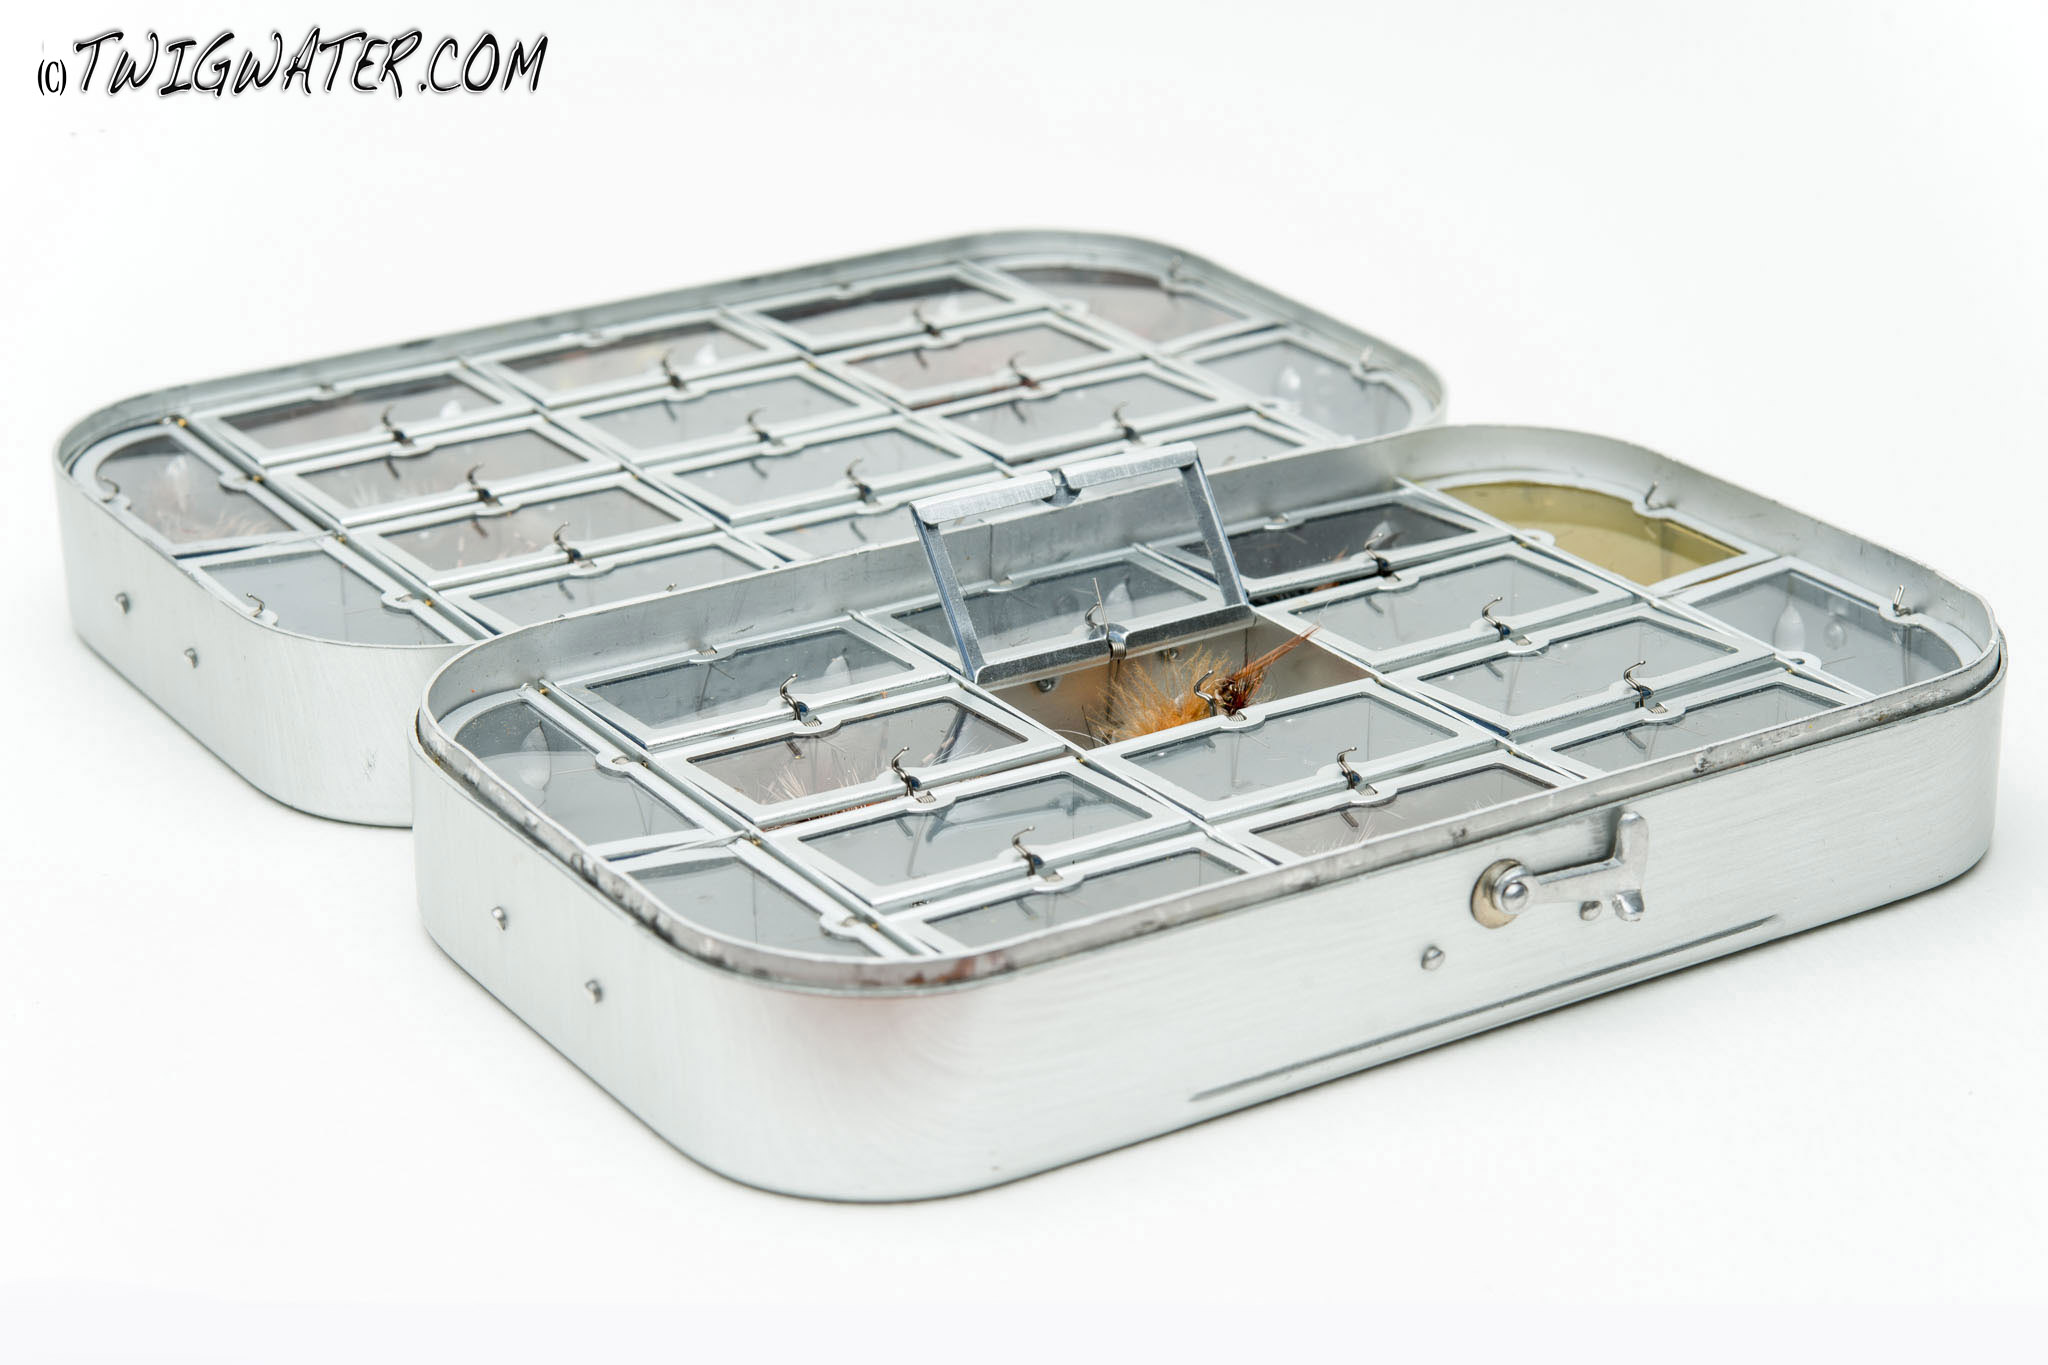 Wheatley fly box review on twigwater